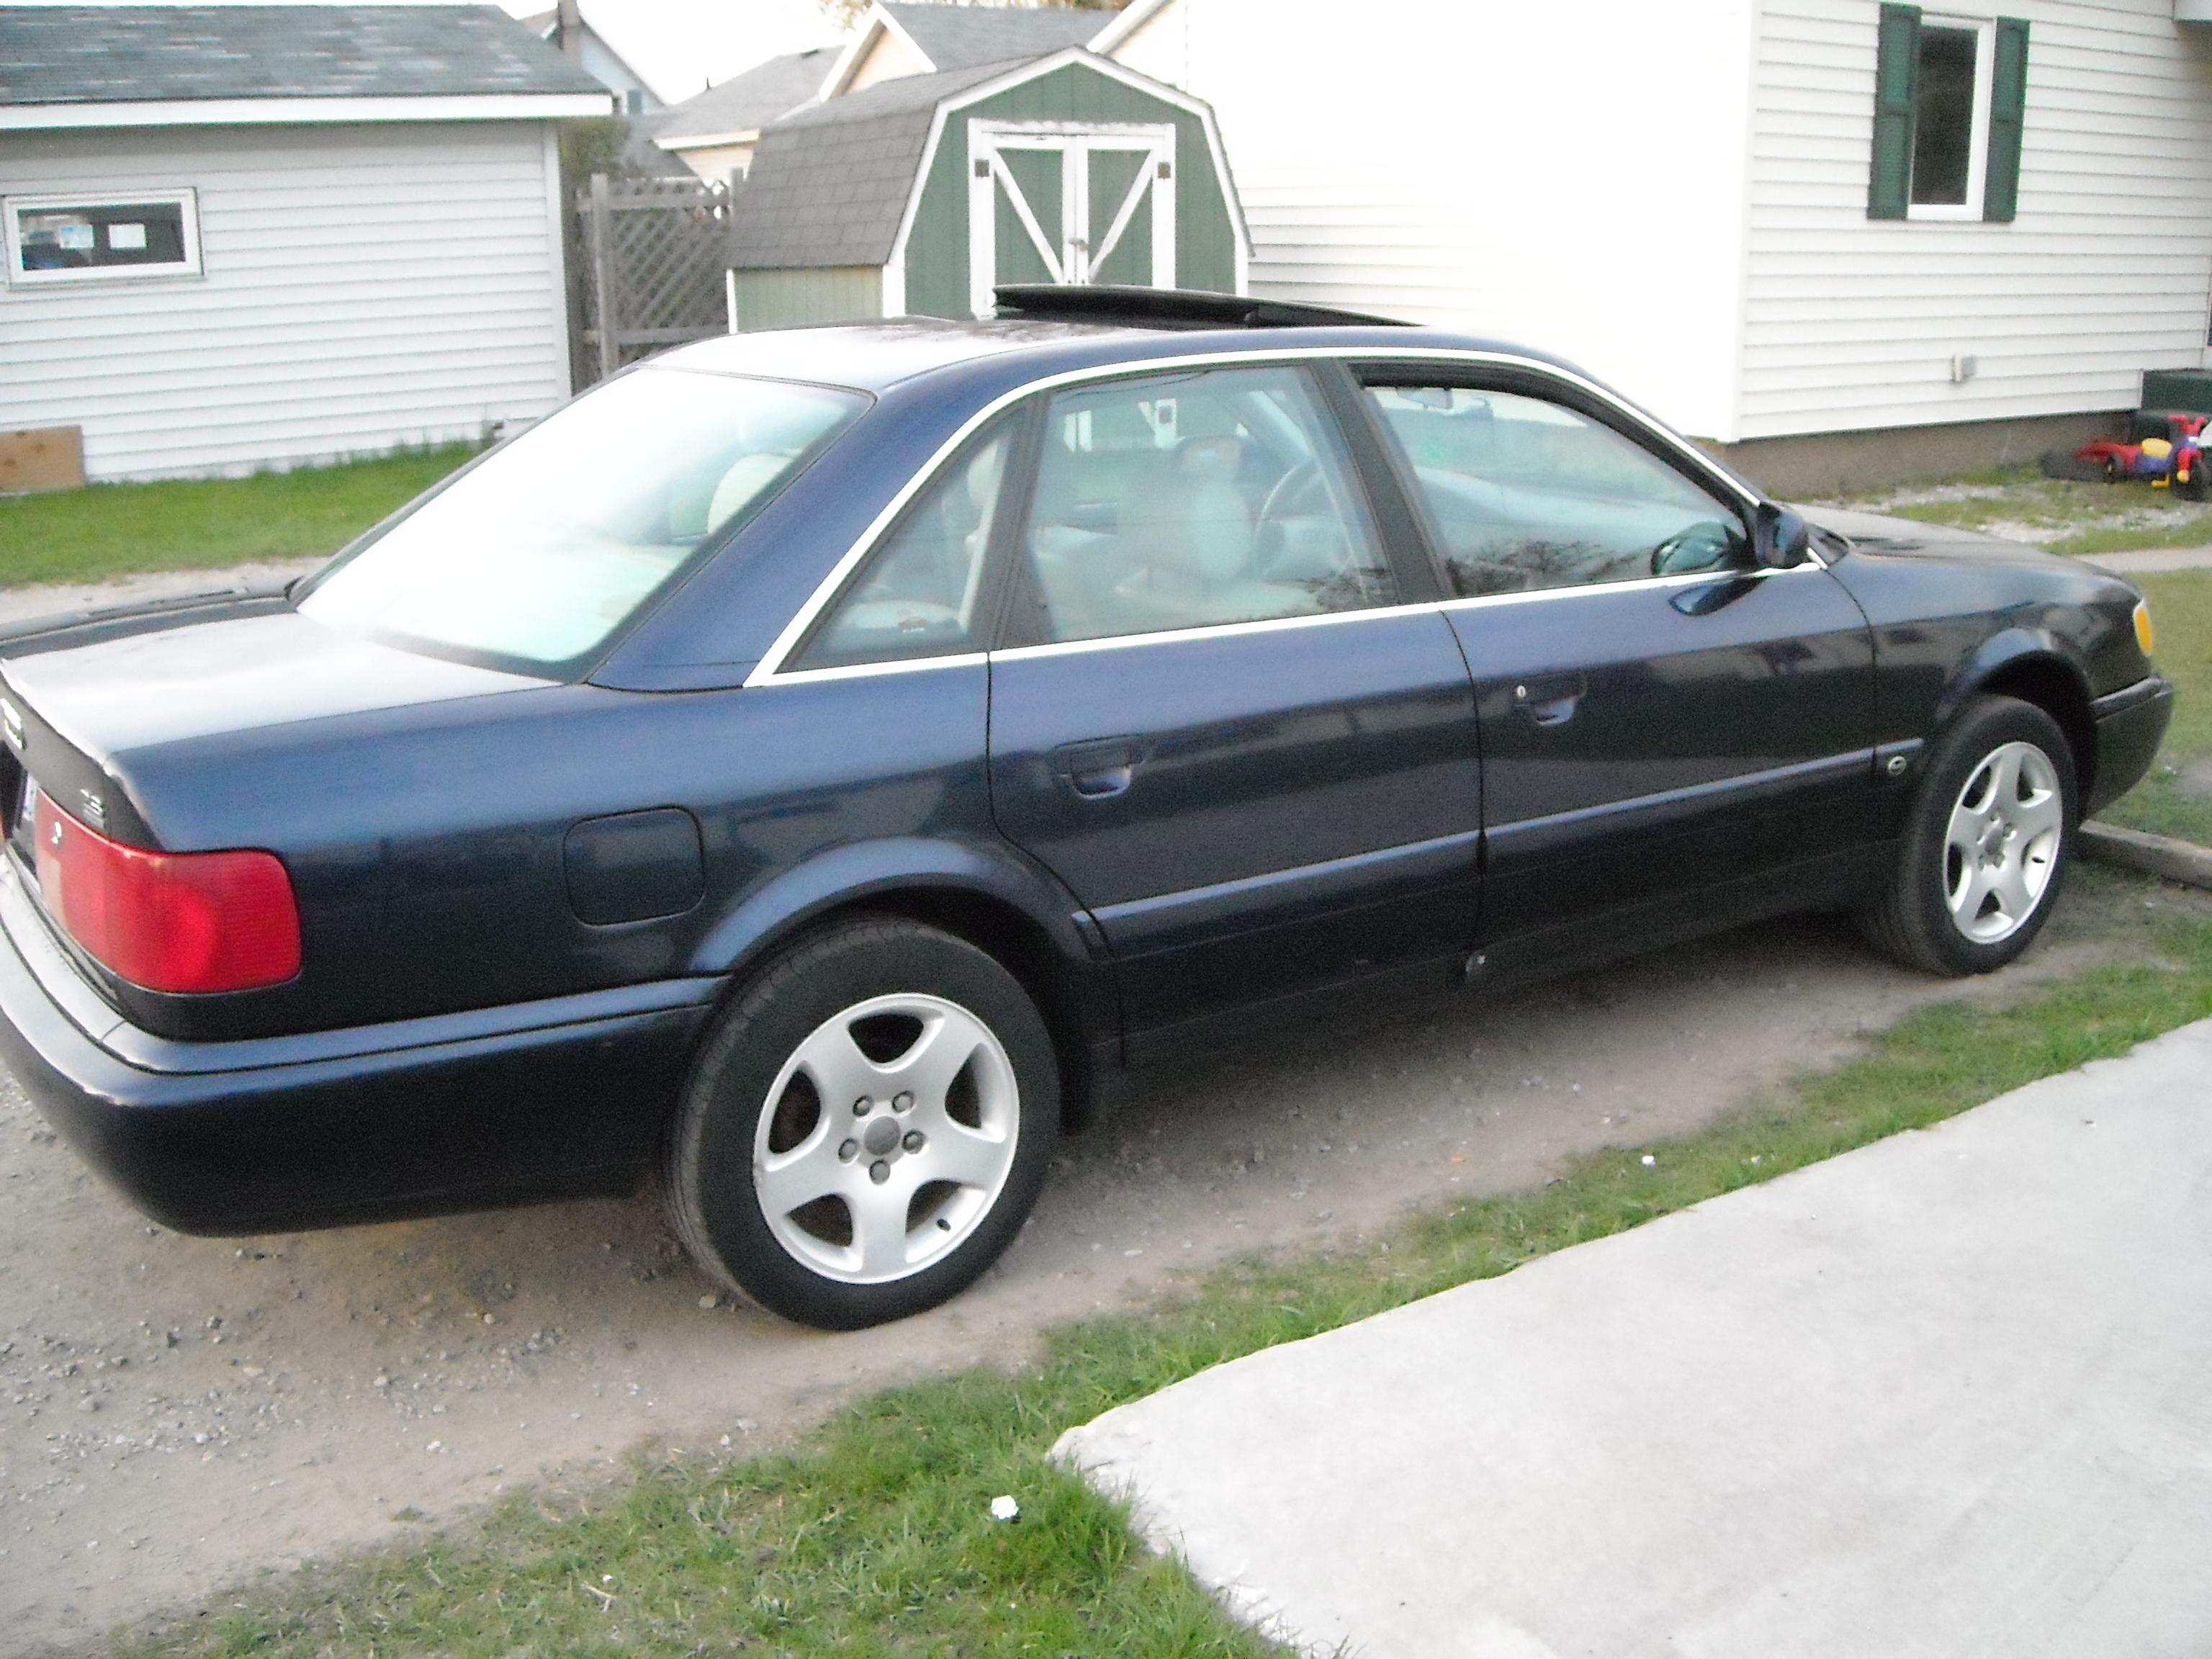 Audi S6 0 60 >> irish1988 1997 Audi A6 Specs, Photos, Modification Info at ...